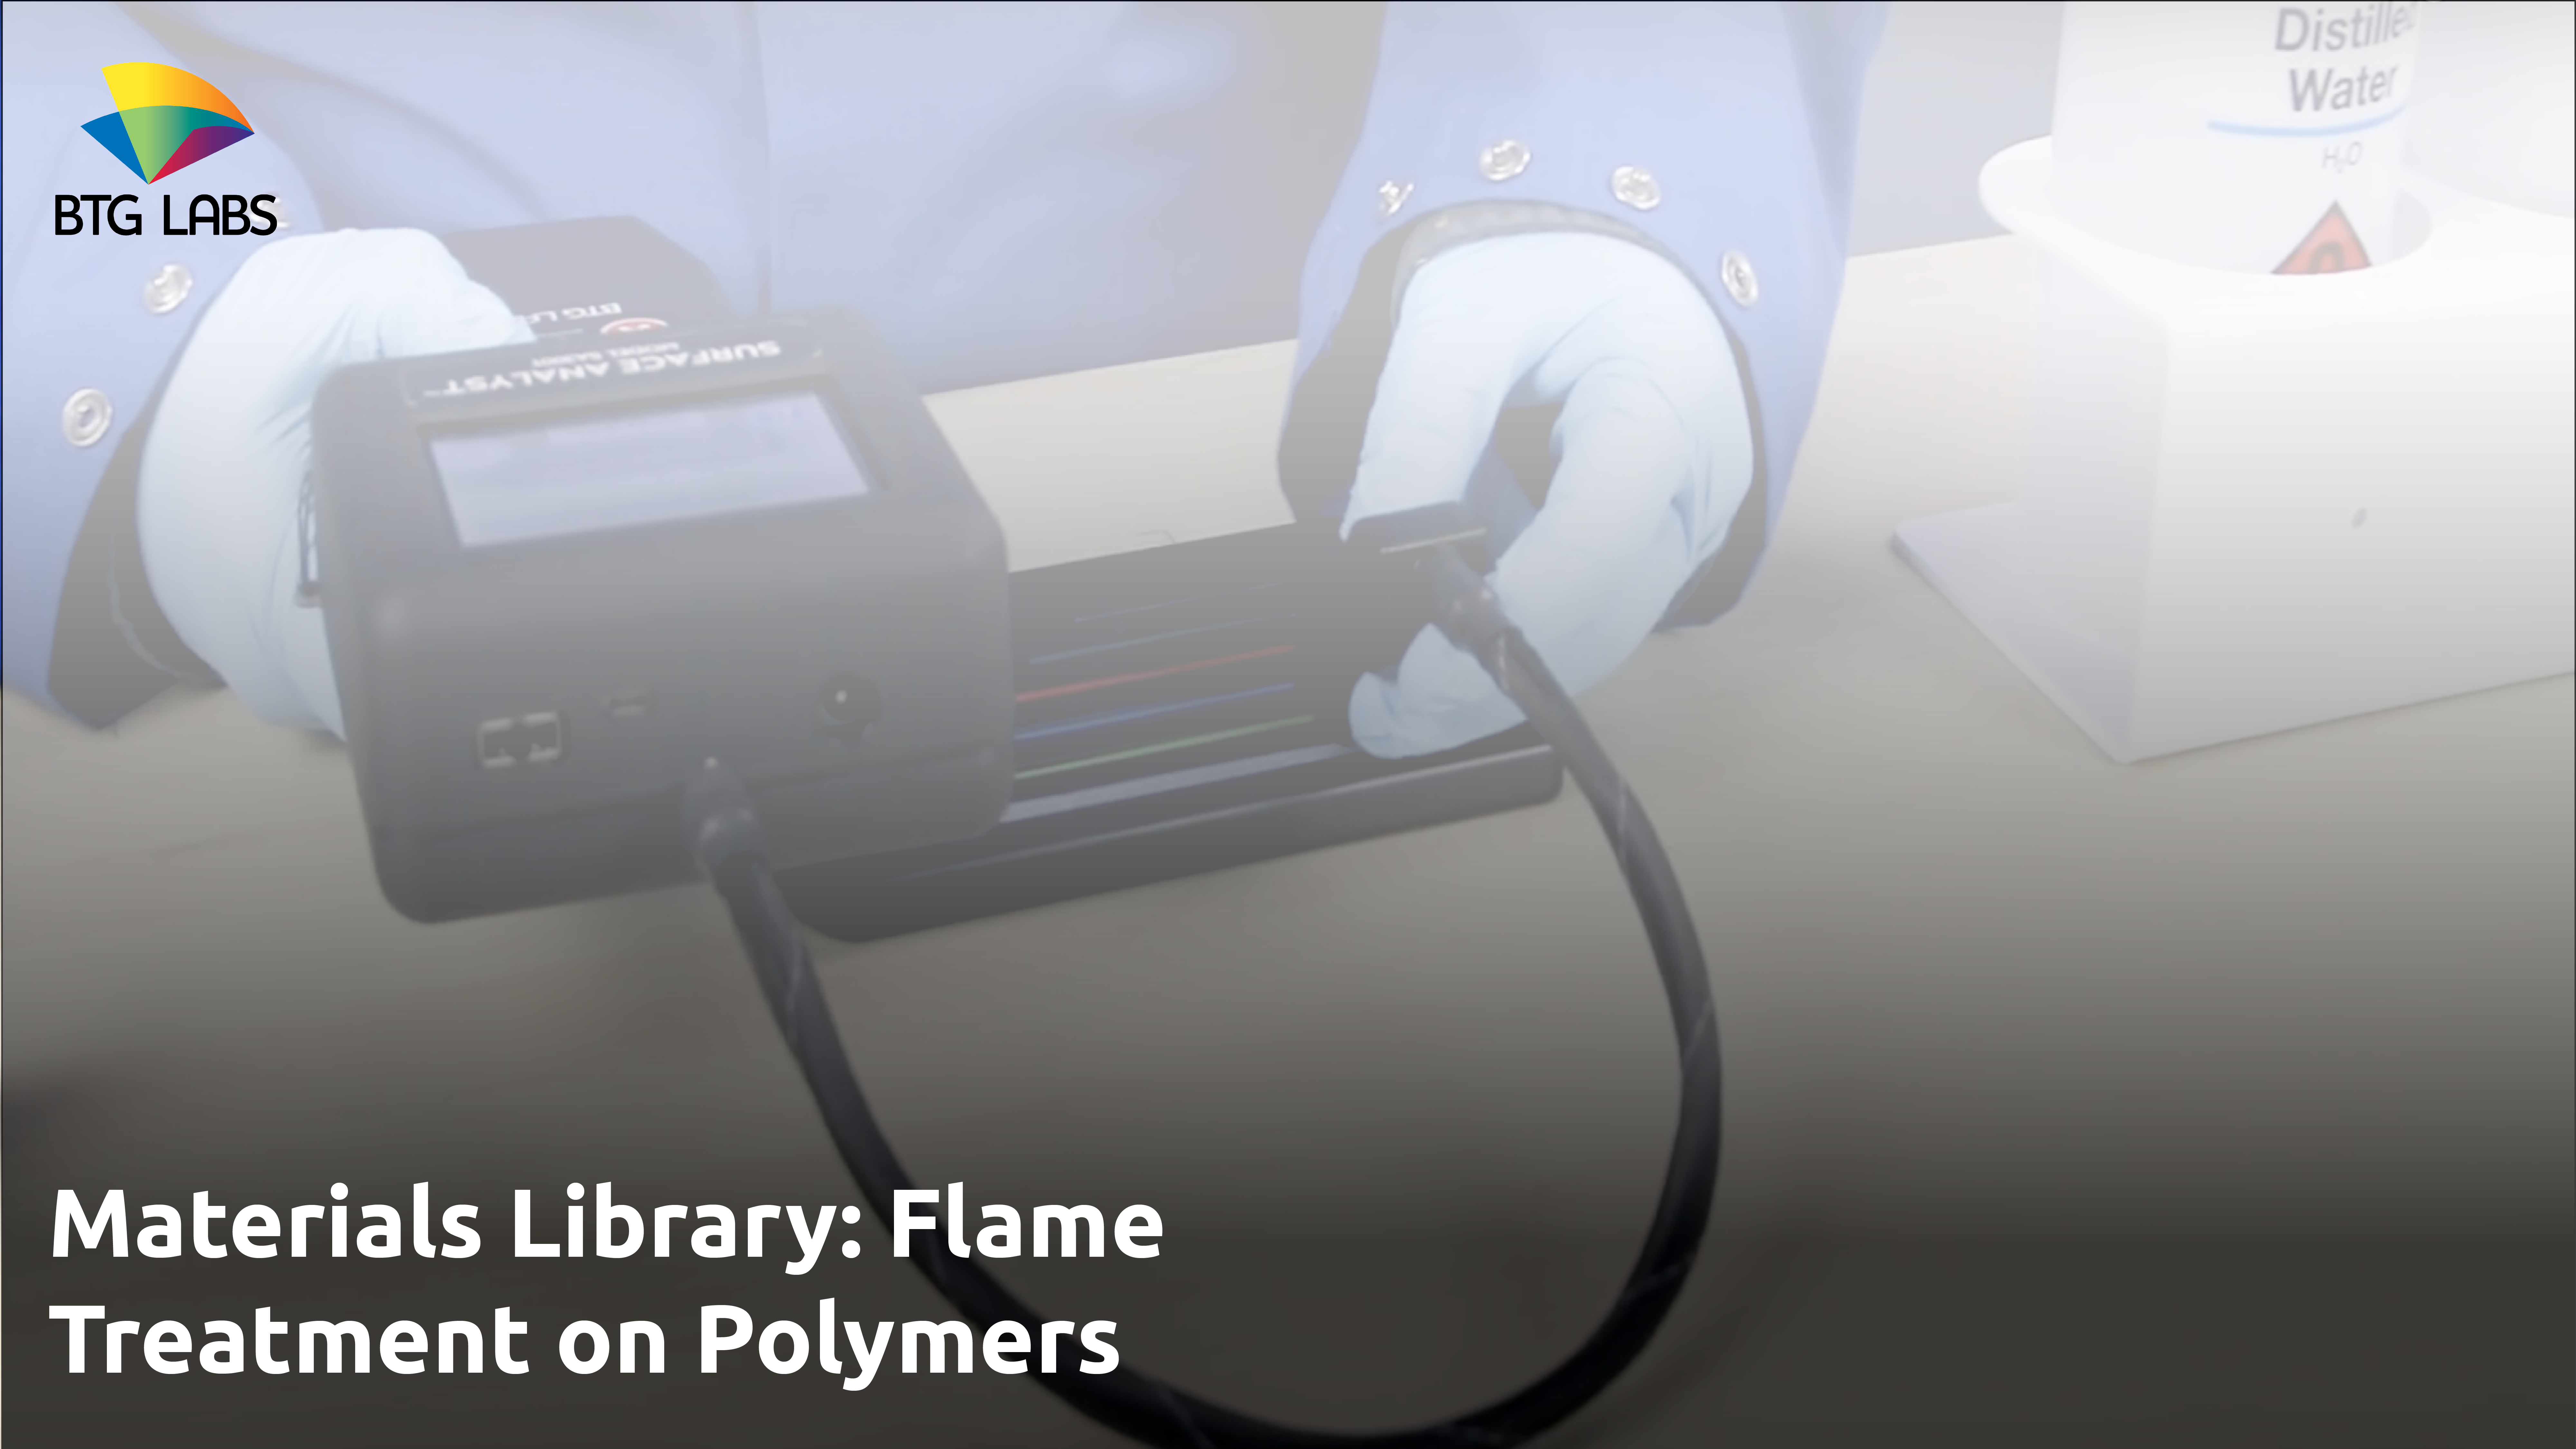 Materials Library - Flame Treatment - Polymers